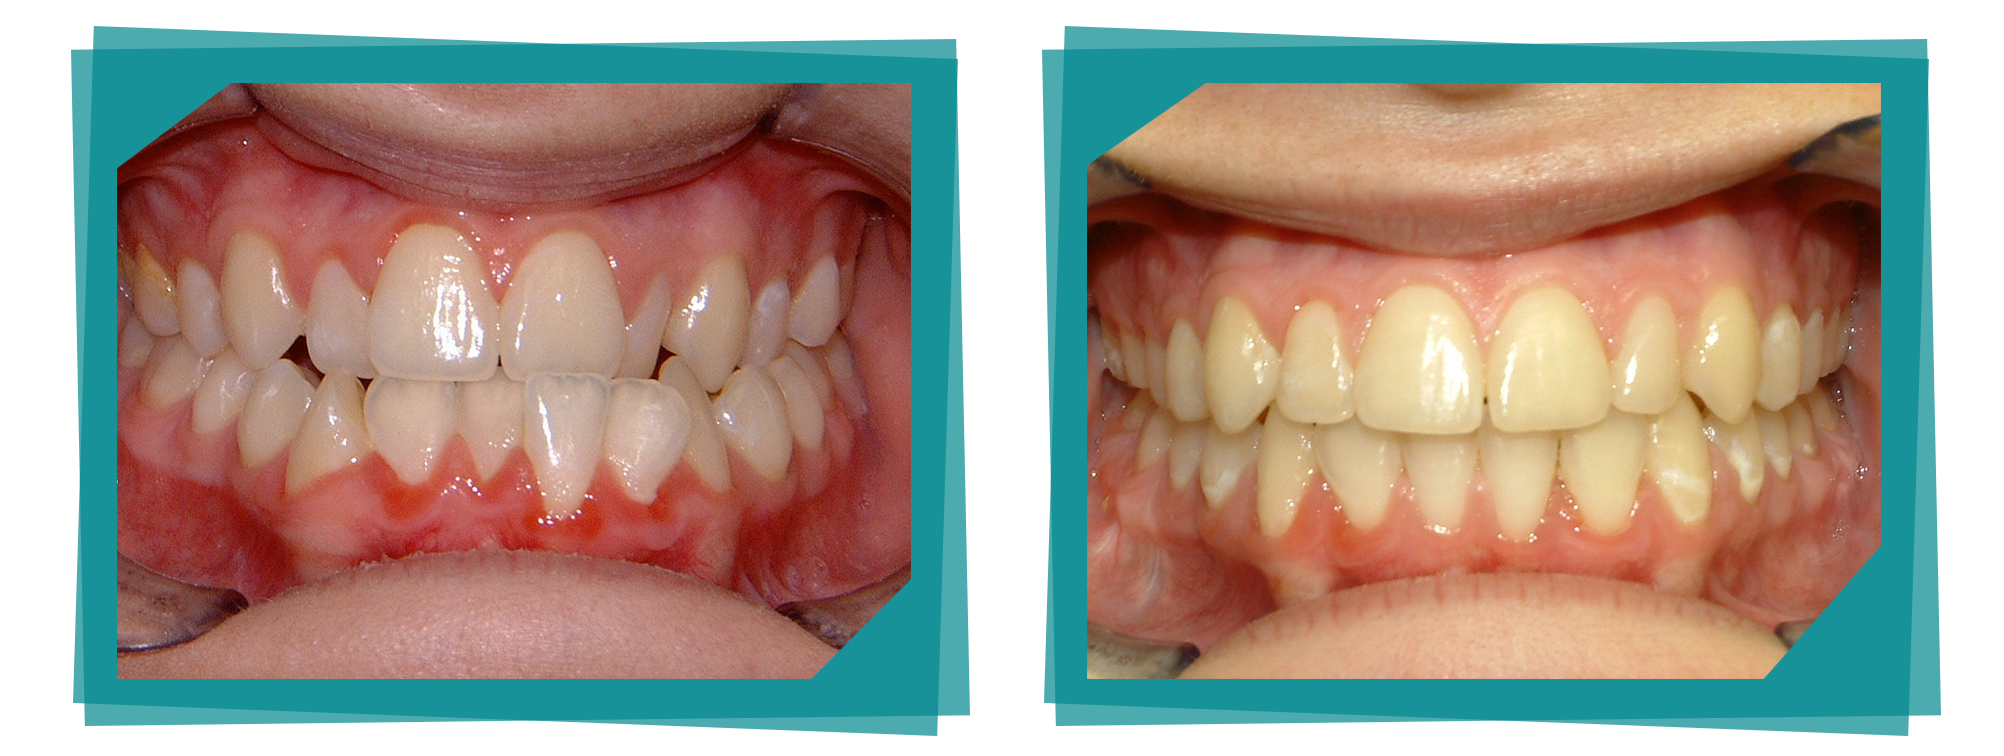 Teeth whitening before and after from Parkcrest Dental Group.